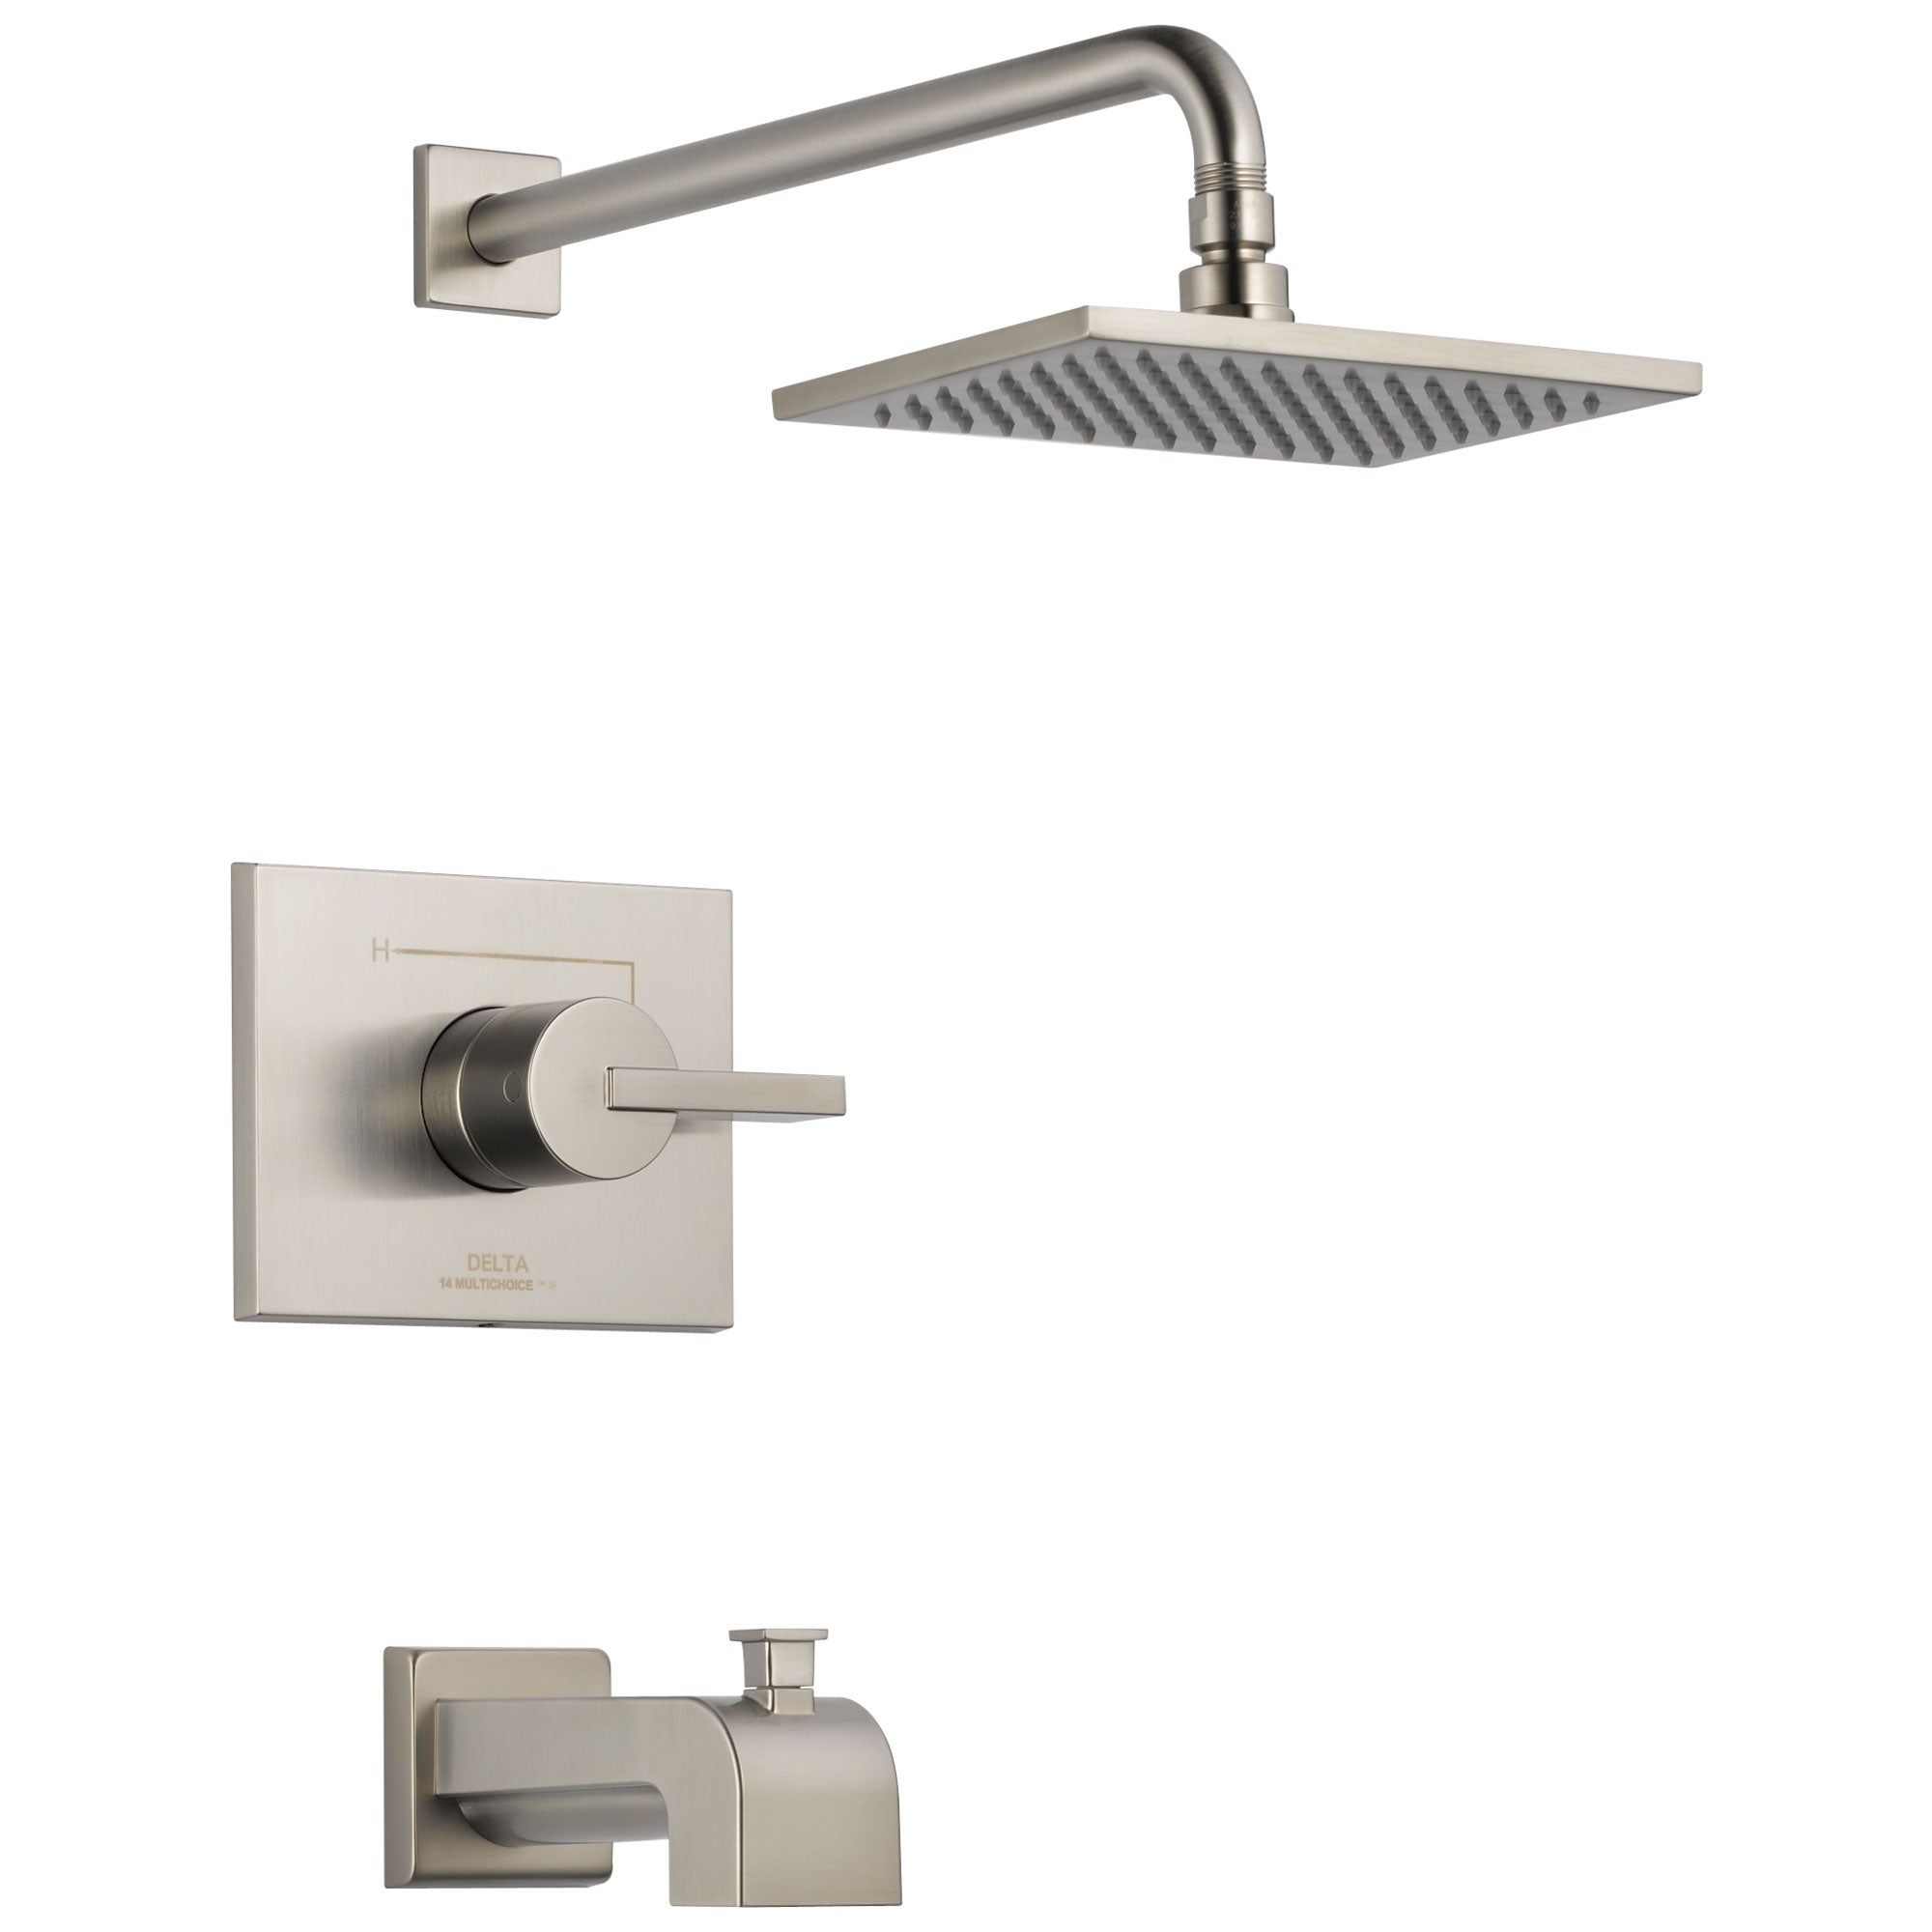 Delta Vero Stainless Steel Finish Monitor 14 Series Water Efficient Tub & Shower Combination Faucet Trim Kit (Requires Valve) DT14453SSWE